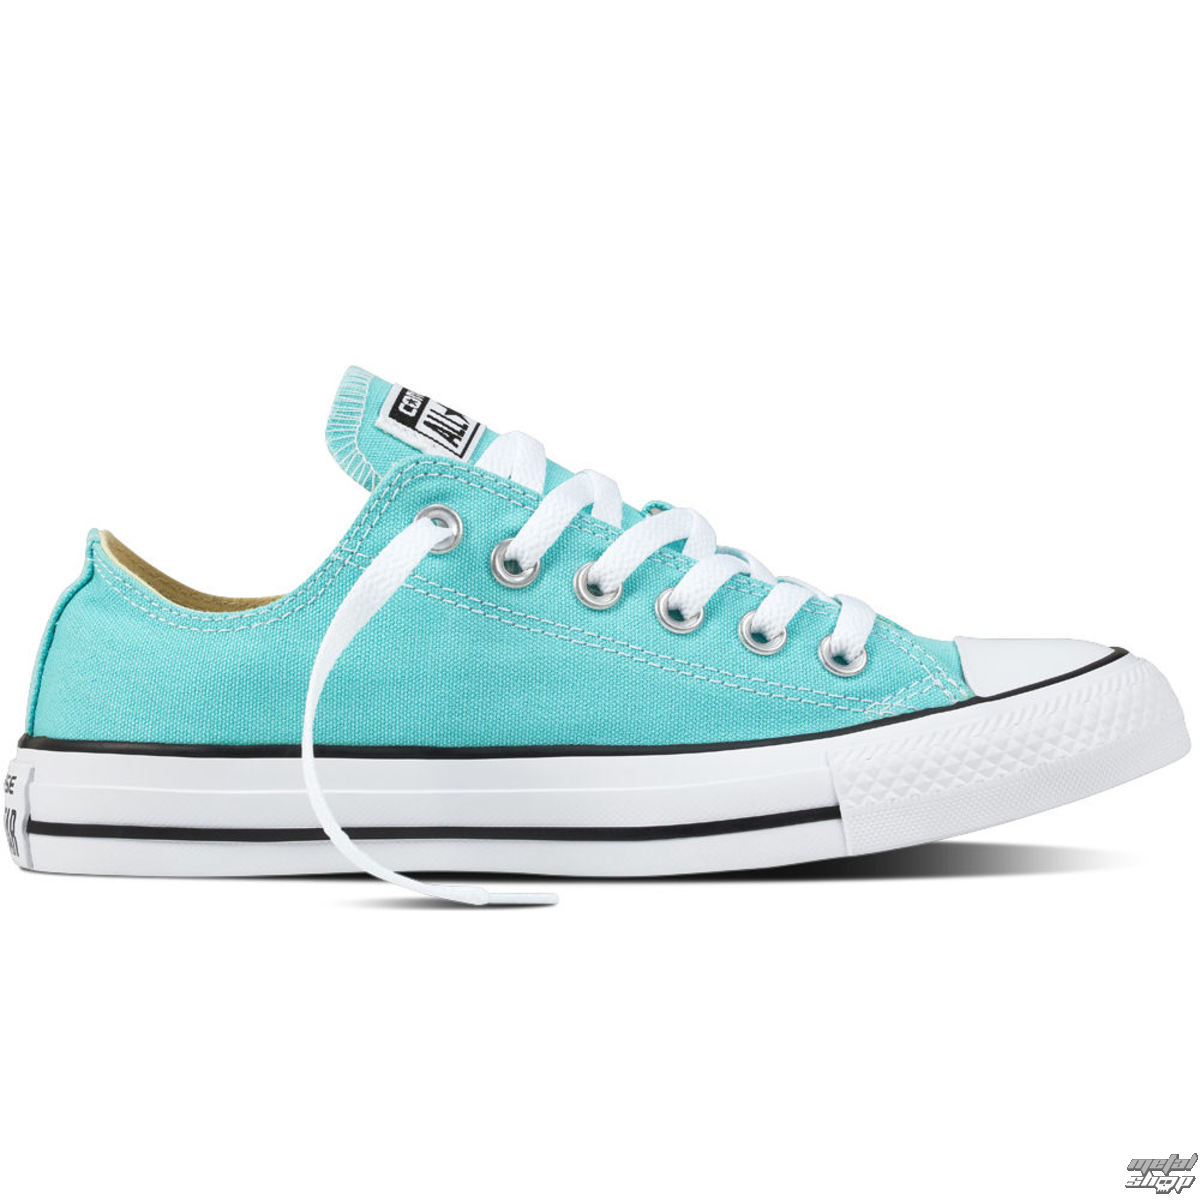 topánky CONVERSE - Chuck Taylor All Star - C157643